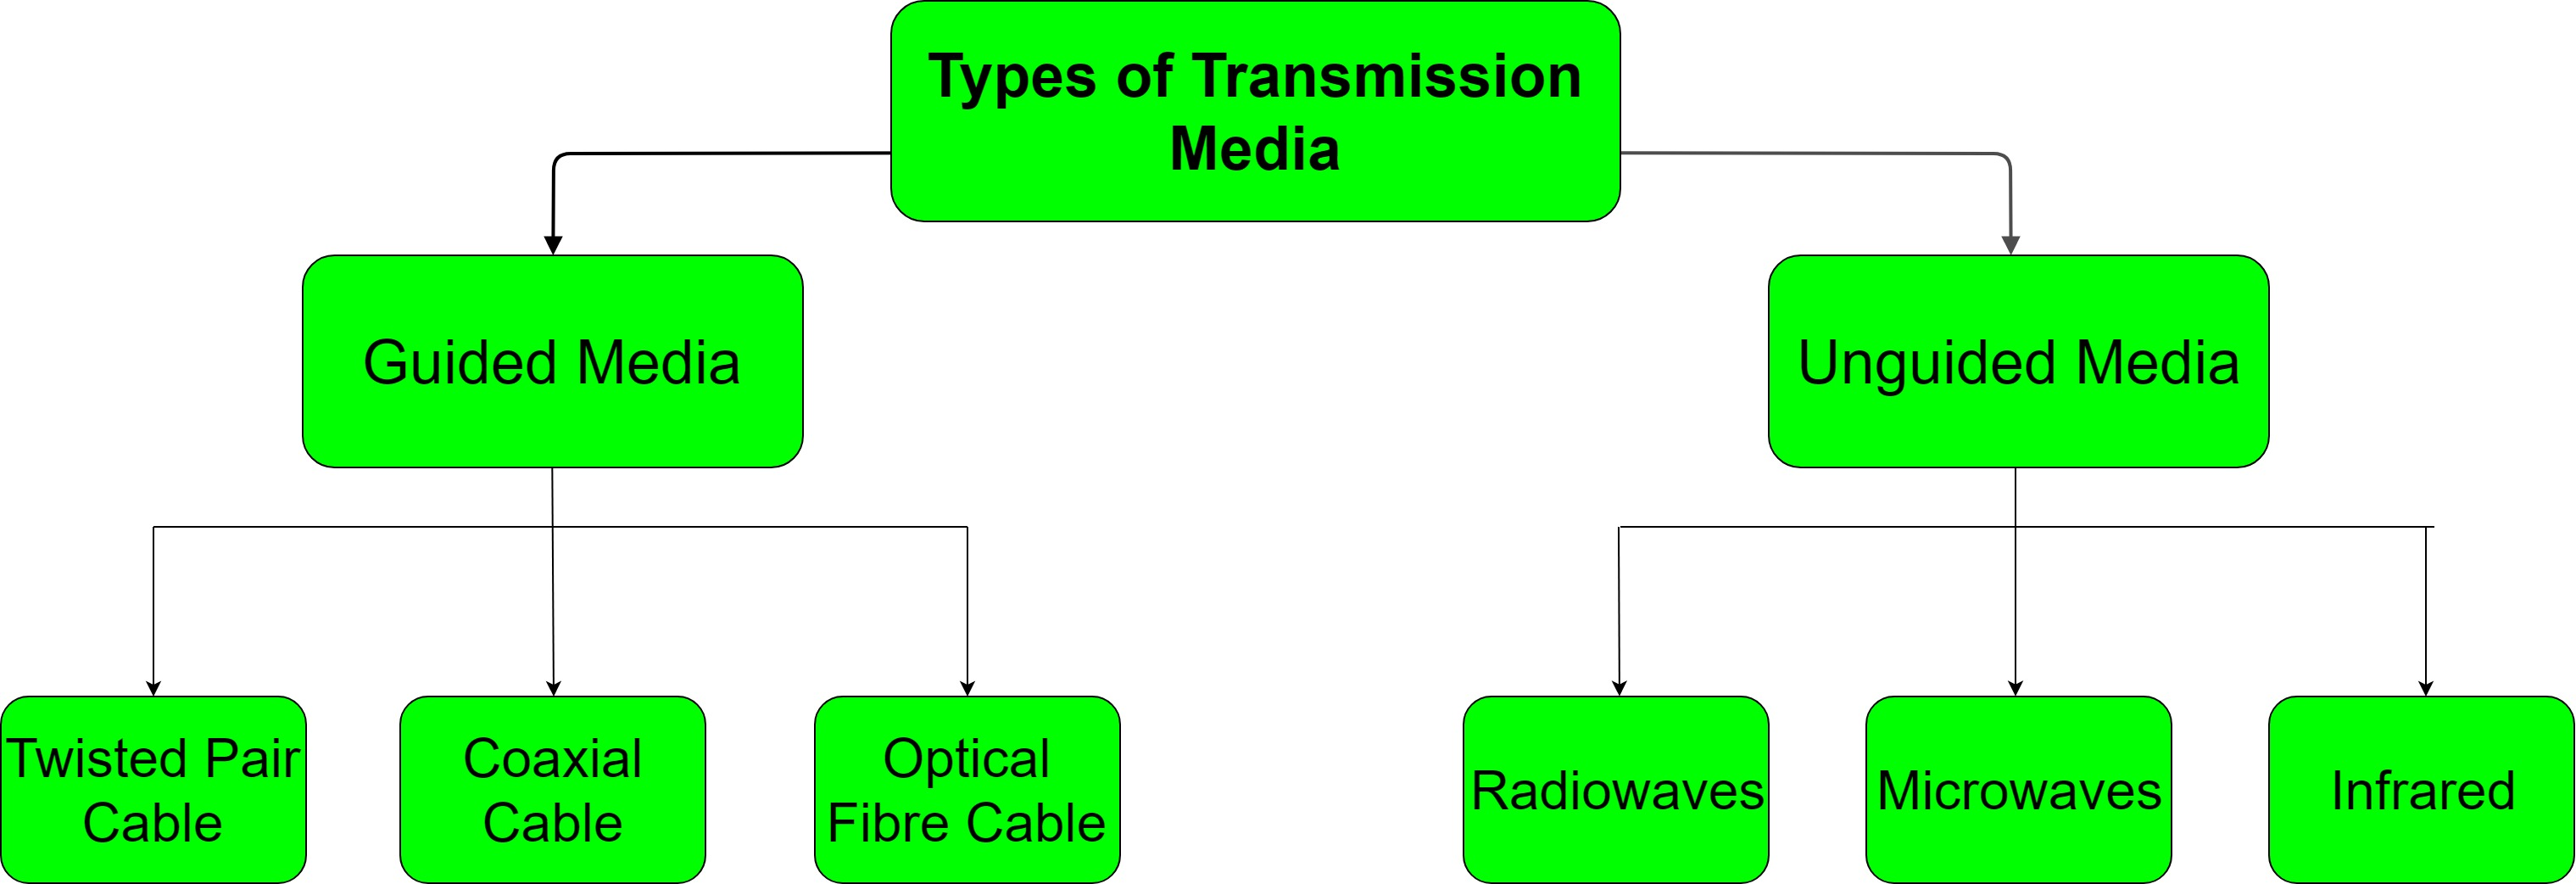 Types of Transmission Media - GeeksforGeeks on wireless access point setup diagram, wireless router setup diagram, wireless extender setup diagram,